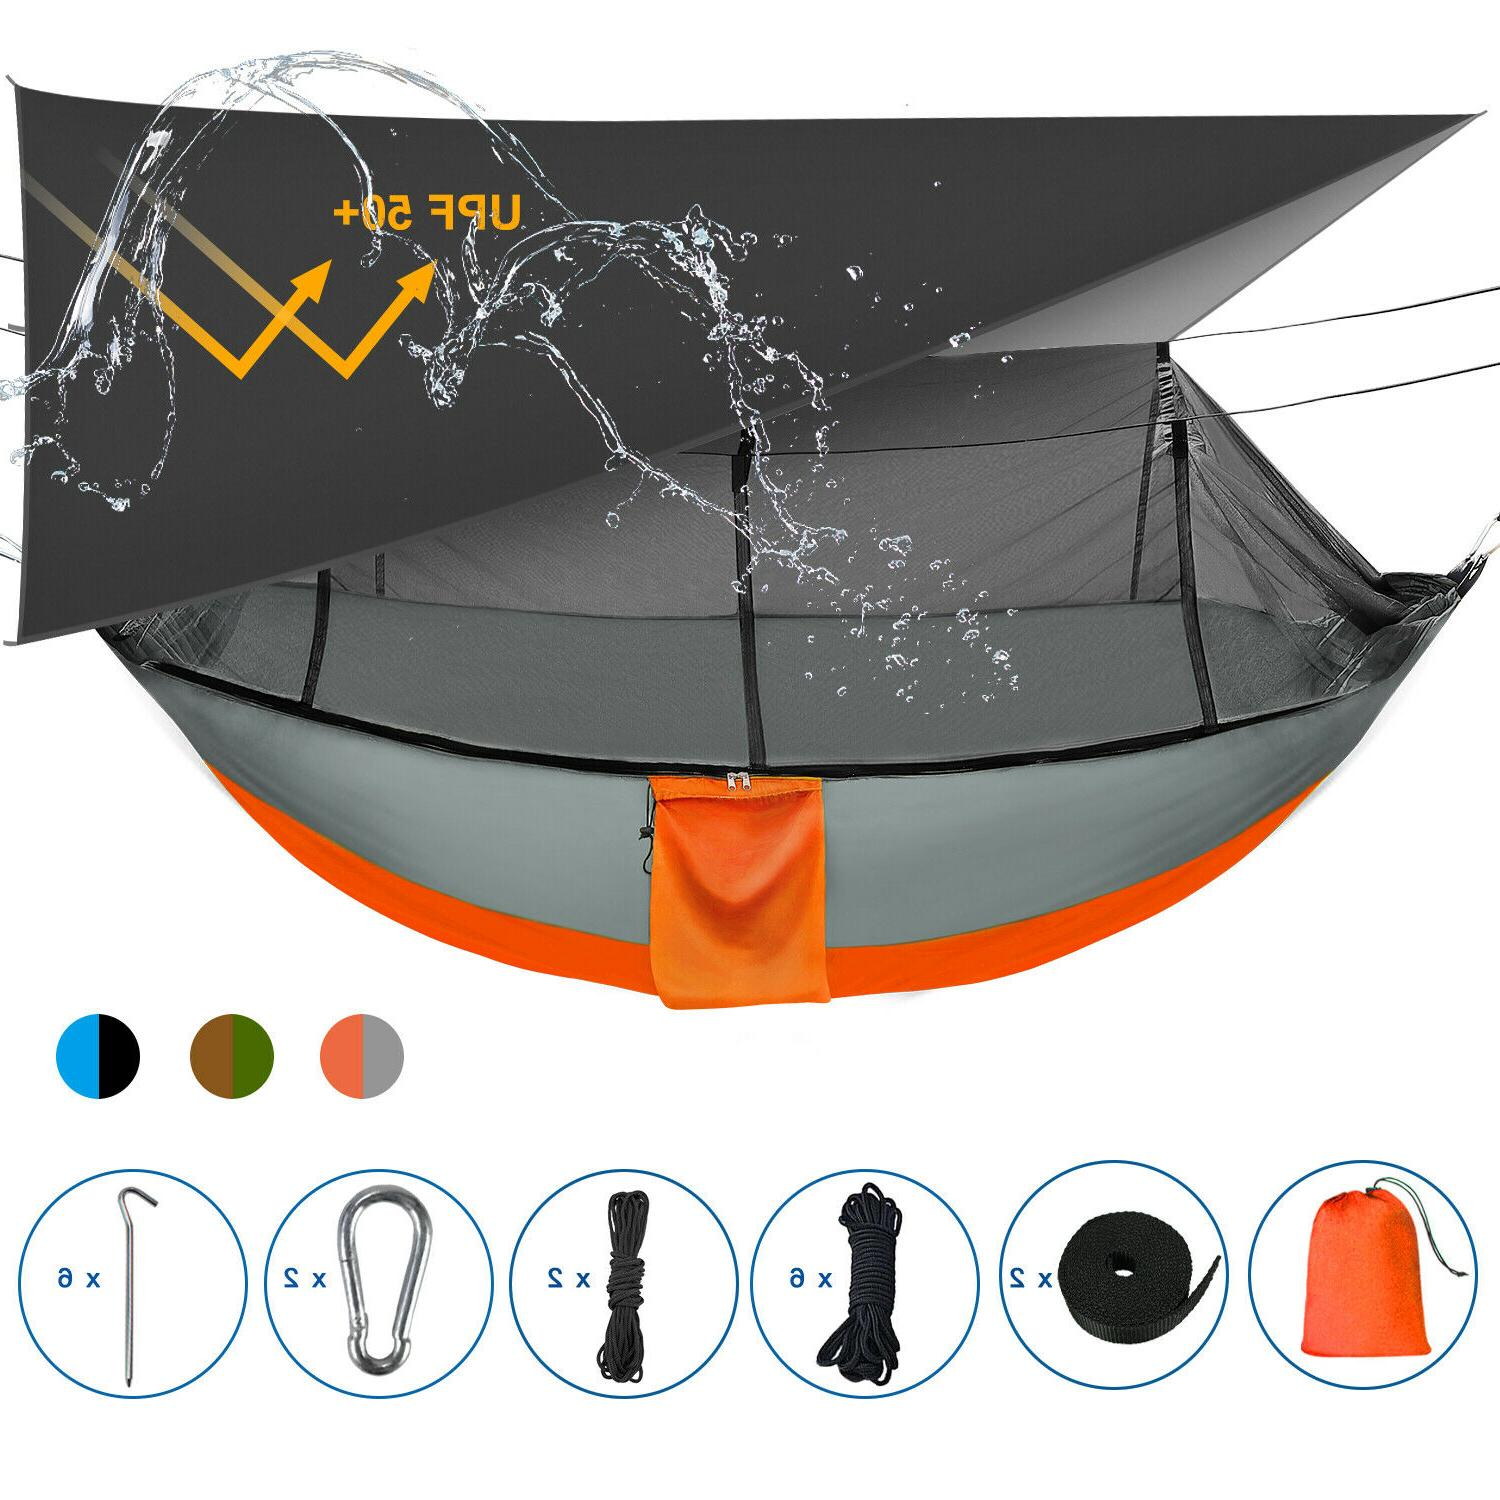 double camping hammock with removable mosquito net